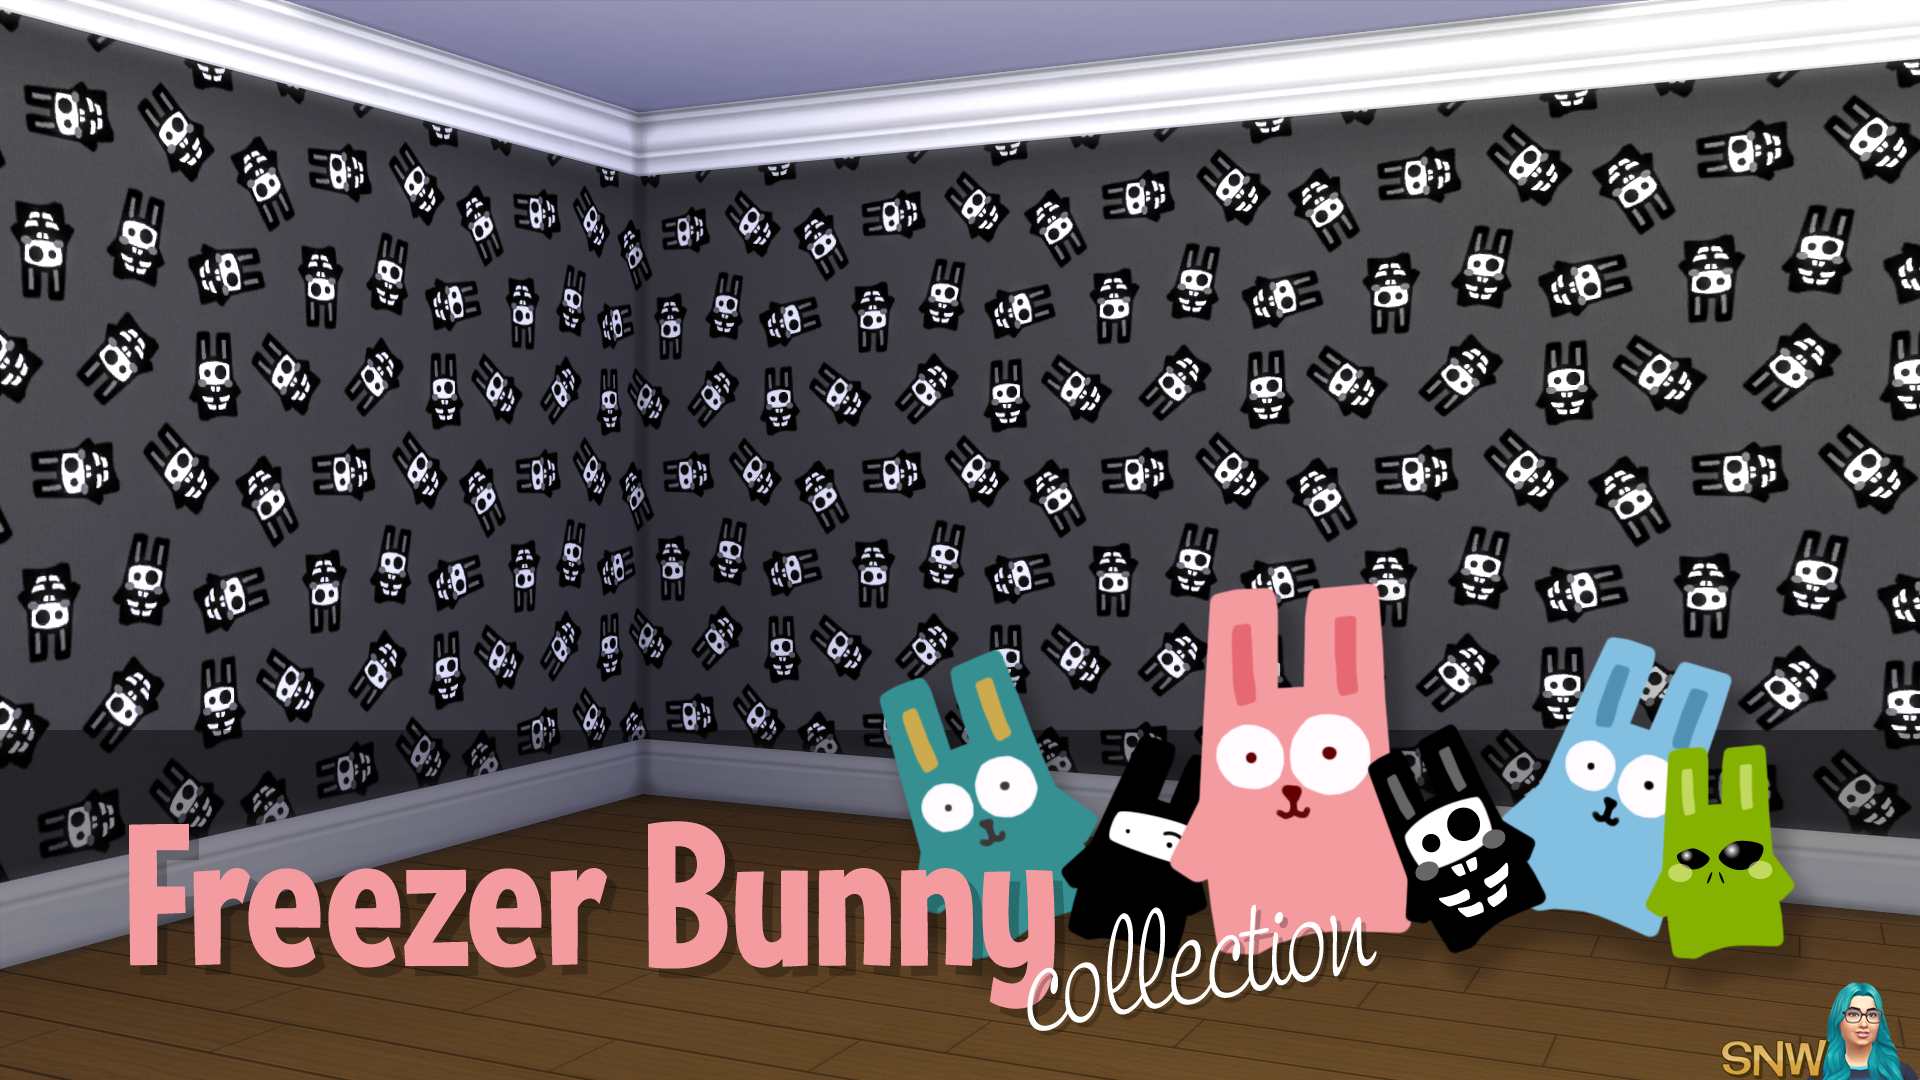 Freezer Bunny Collectie: Grote Bunnies Behang